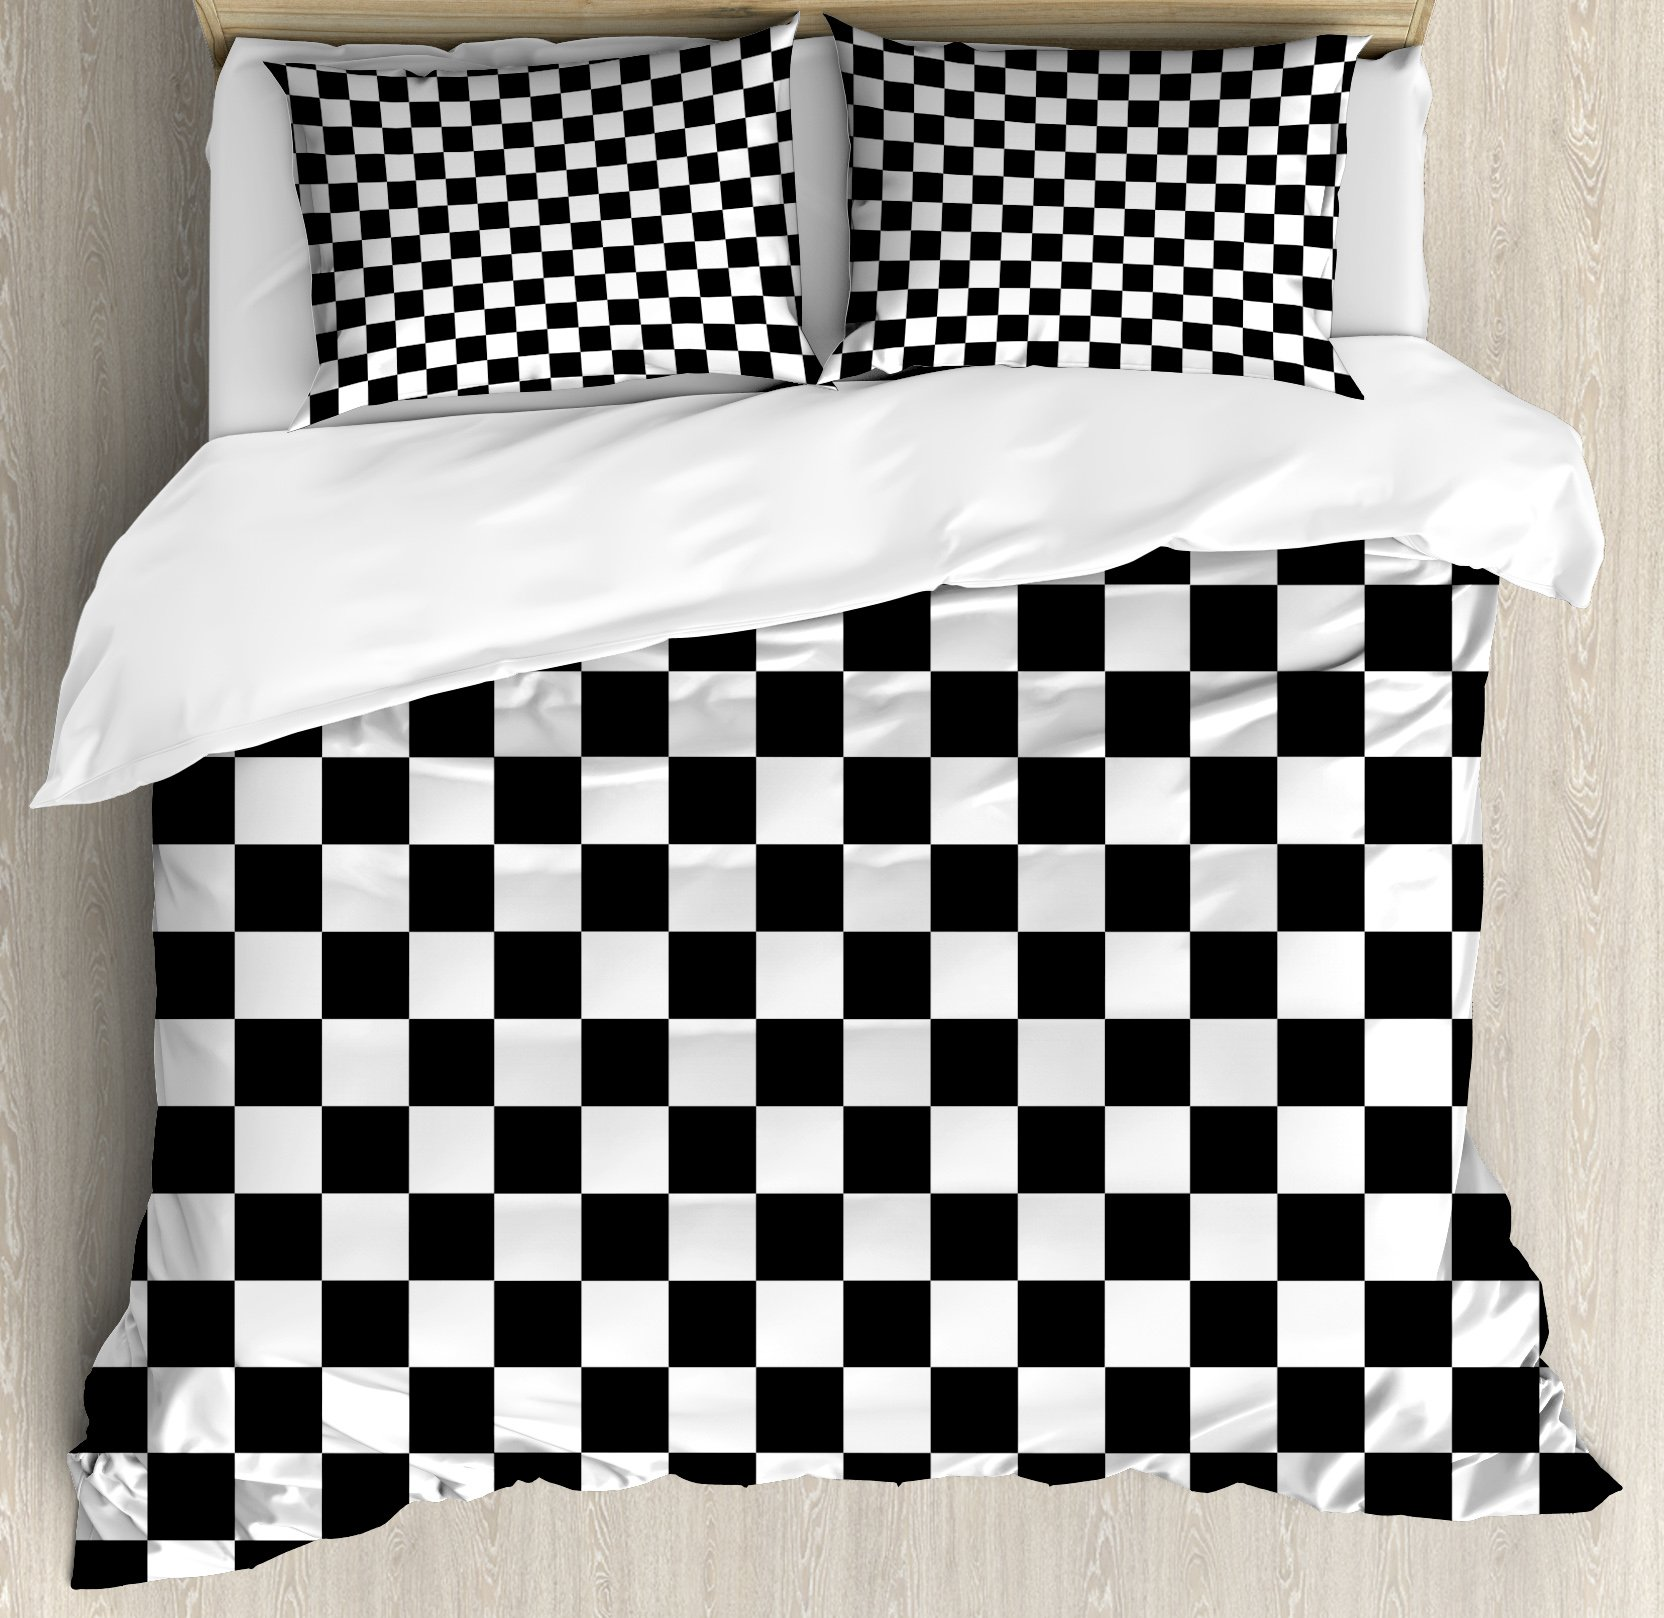 Checkers Game Duvet Cover Set Queen Size by Ambesonne, Geometric Grid Style Monochrome Squares in Traditional Game Board Design, Decorative 3 Piece Bedding Set with 2 Pillow Shams, Black White